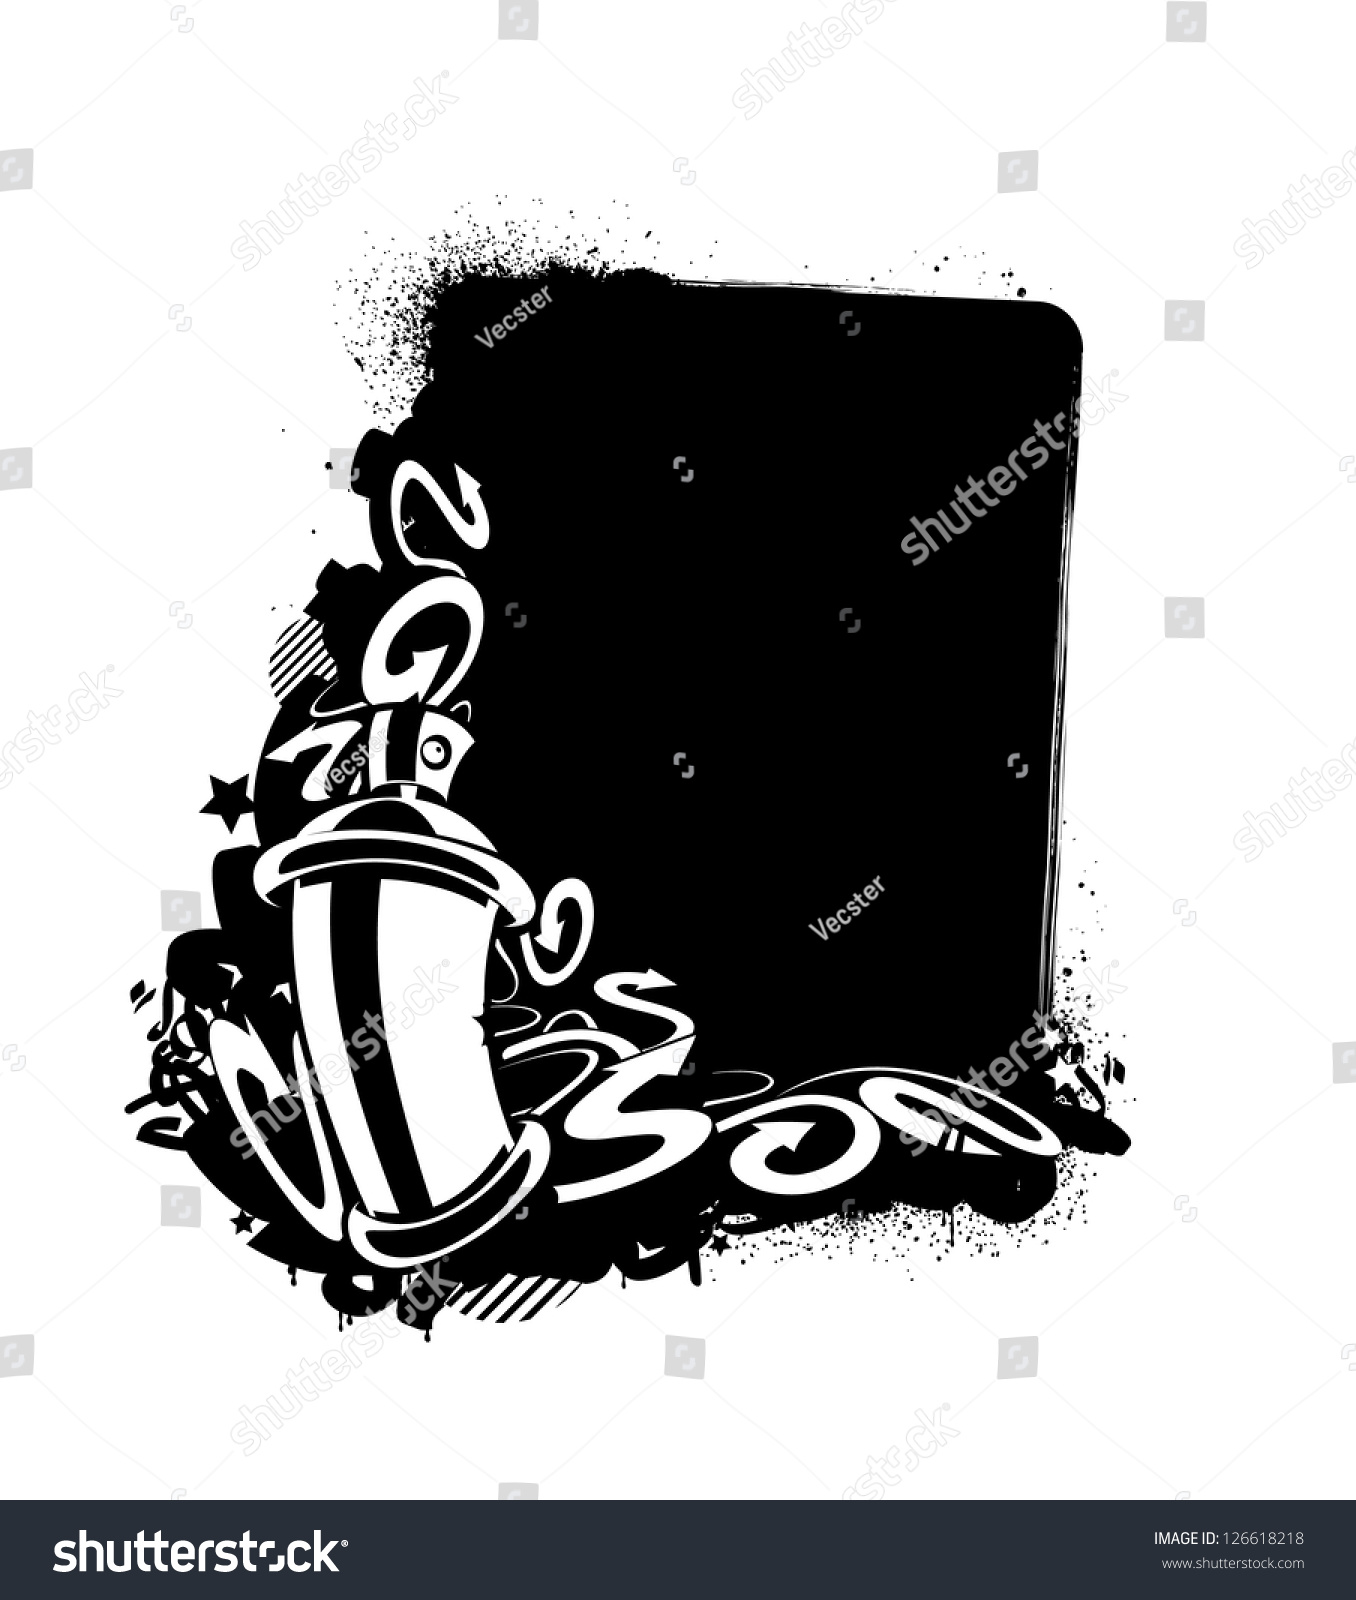 Graffiti image of can with arrows vertical banner monochrome sketch vector illustration